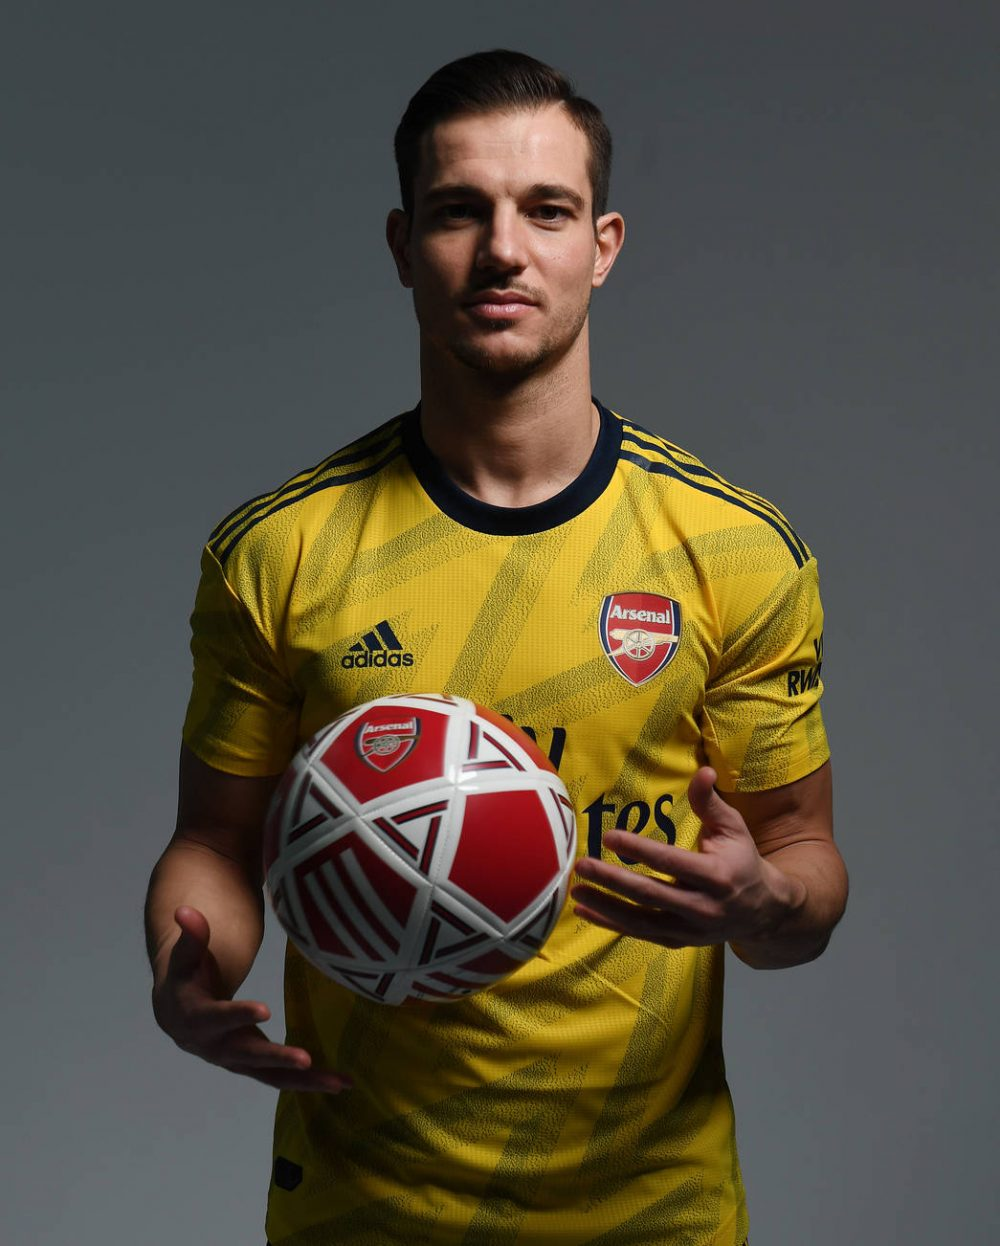 ST ALBANS, ENGLAND - JANUARY 30: Arsenal unveil new signing Cedric Soares at London Colney on January 30, 2020 in St Albans, England. (Photo by Stuart MacFarlane/Arsenal FC via Getty Images)